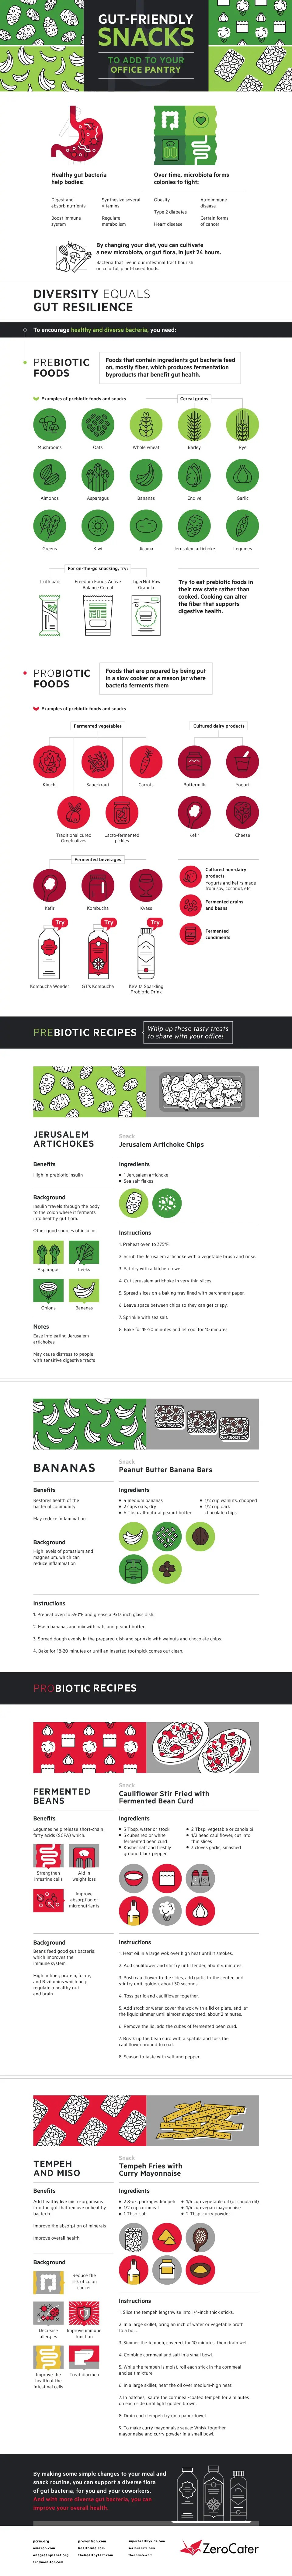 Gut-Friendly Snacks to Add to Your Office Pantry InfoGraphic